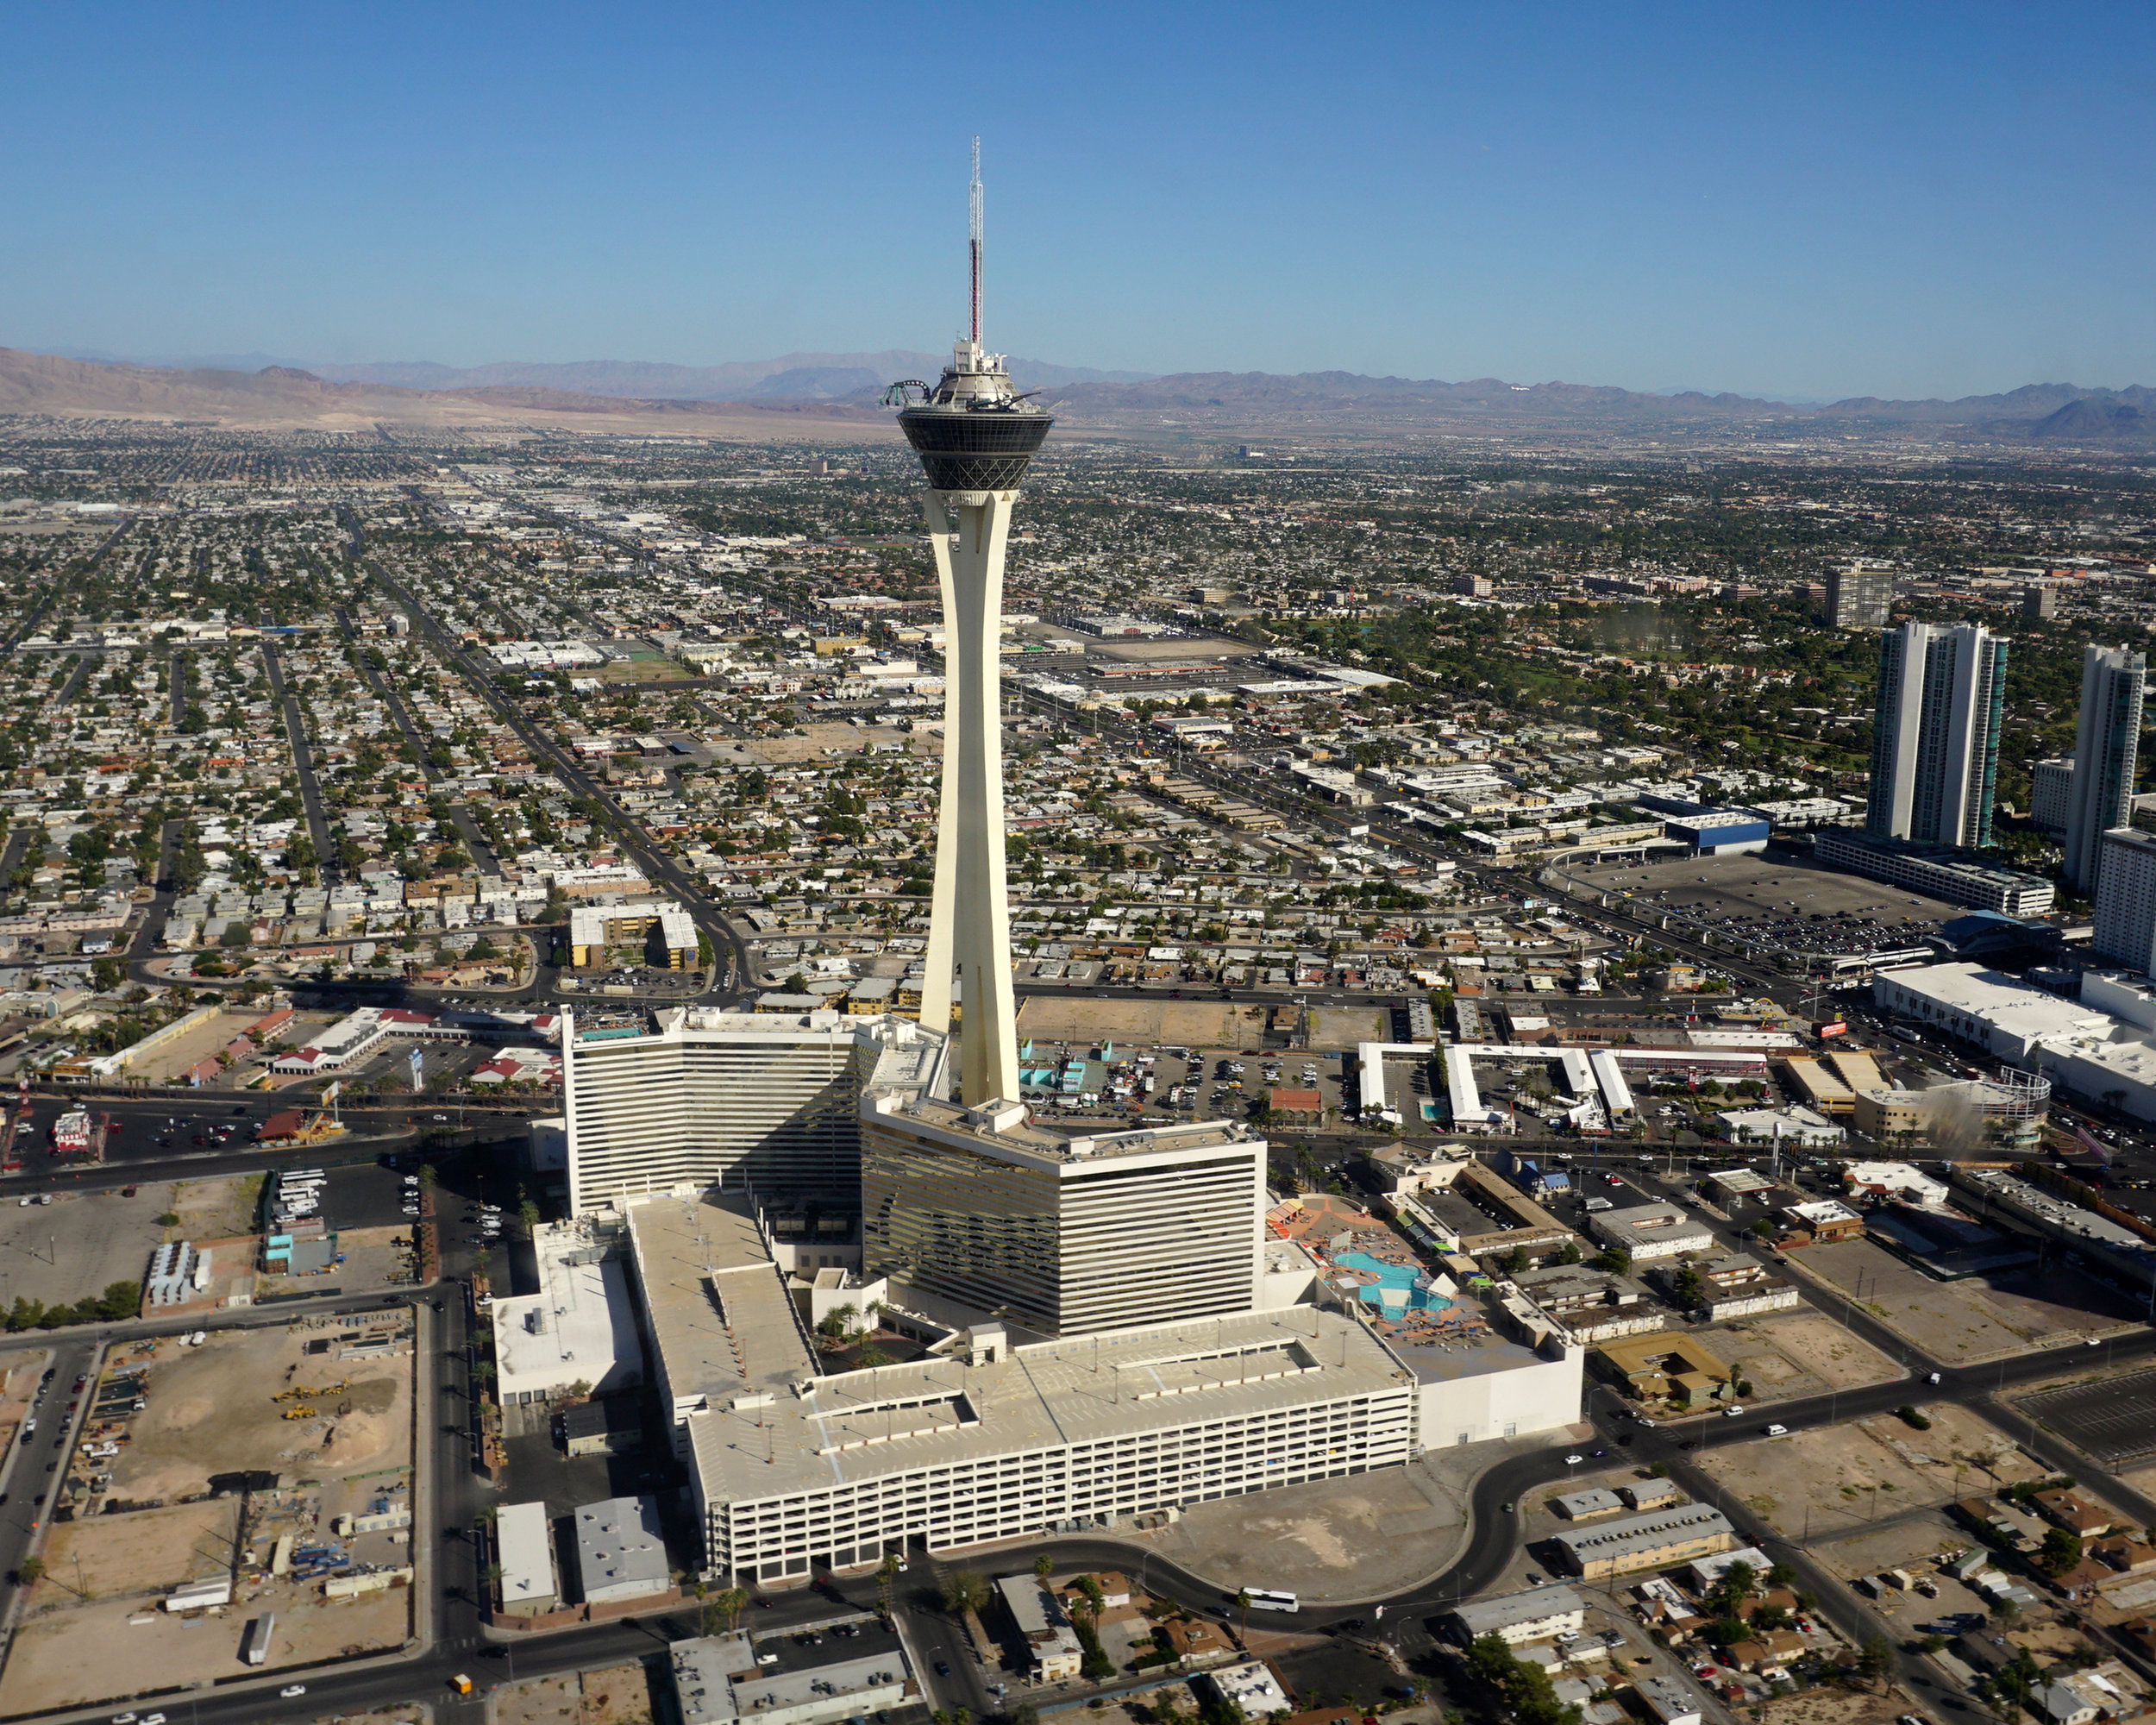 The Stratosphere Casino, Hotel, & Tower. Pro tip - if you say you're just going to the bar, you can ride the elevator up for free. Tell 'em Jack sent ya! (don't tell them this).